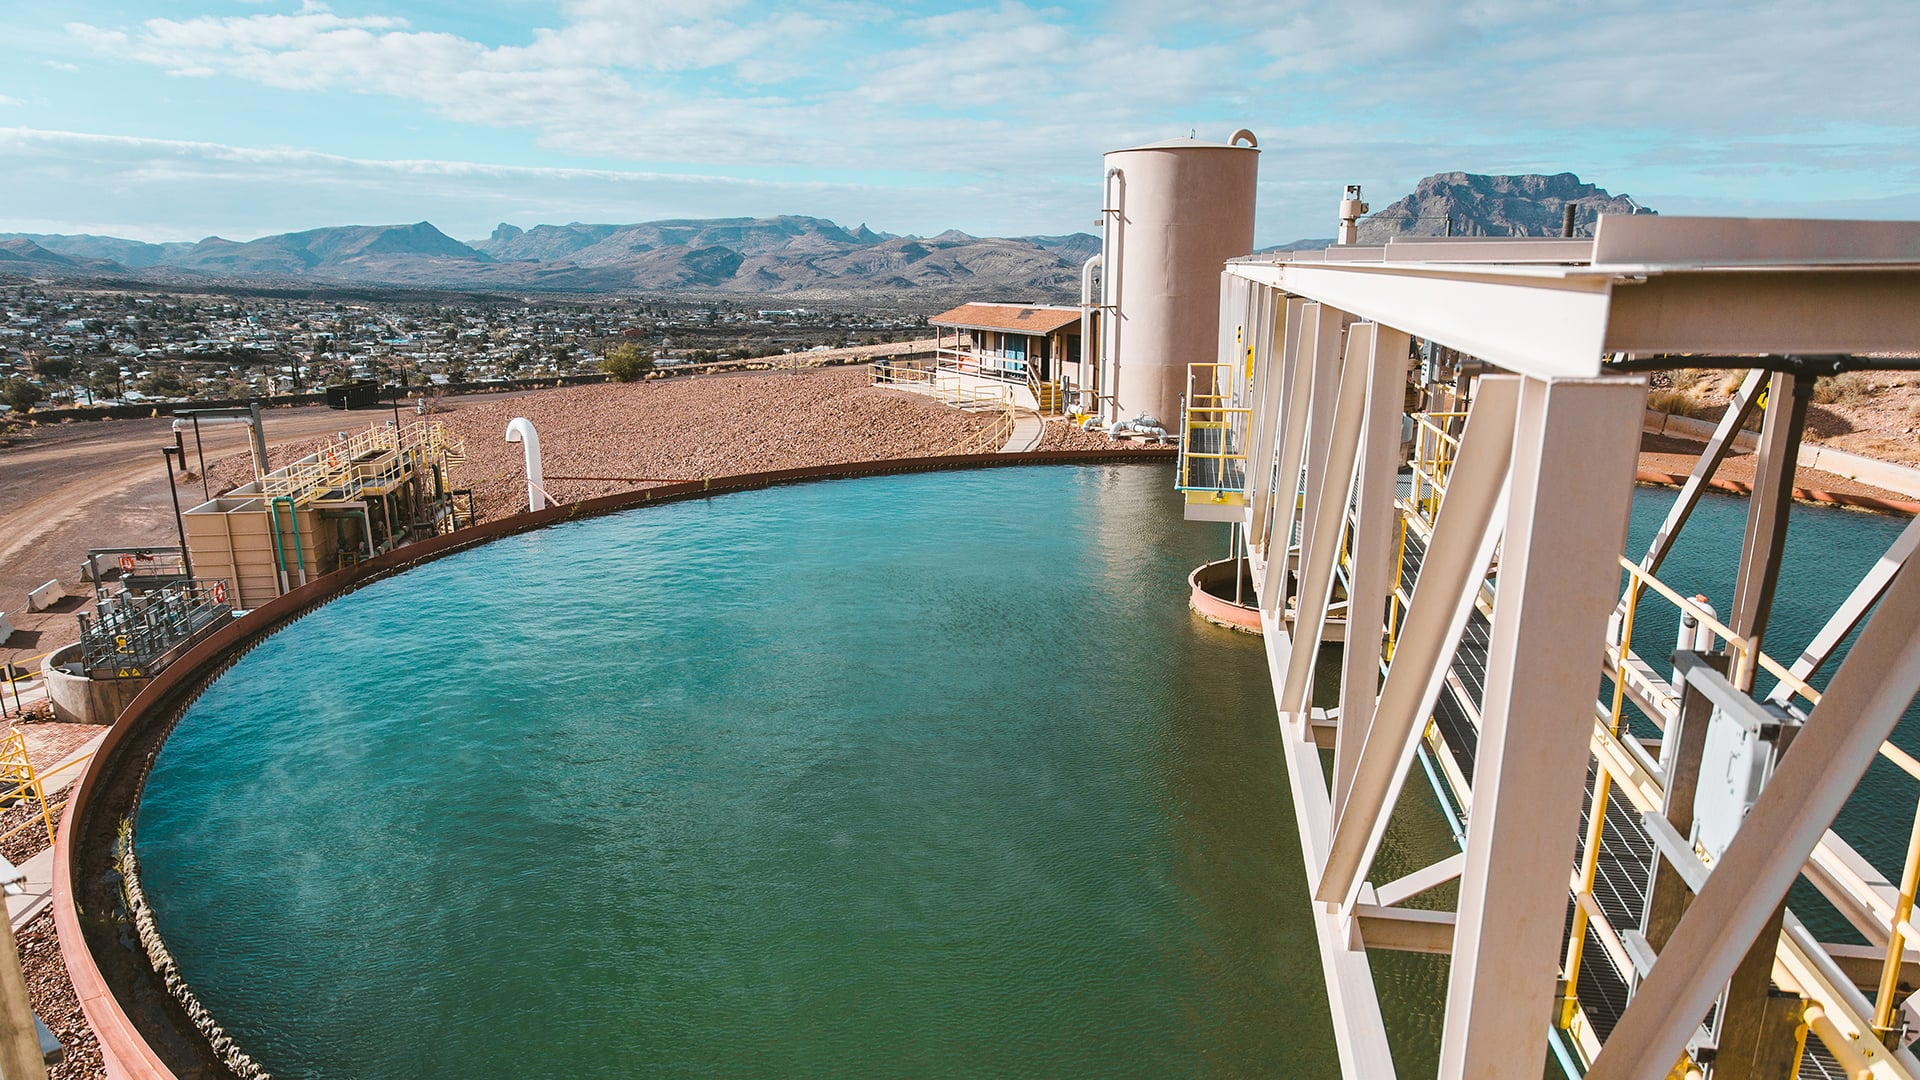 Resolution Copper Mine, United States